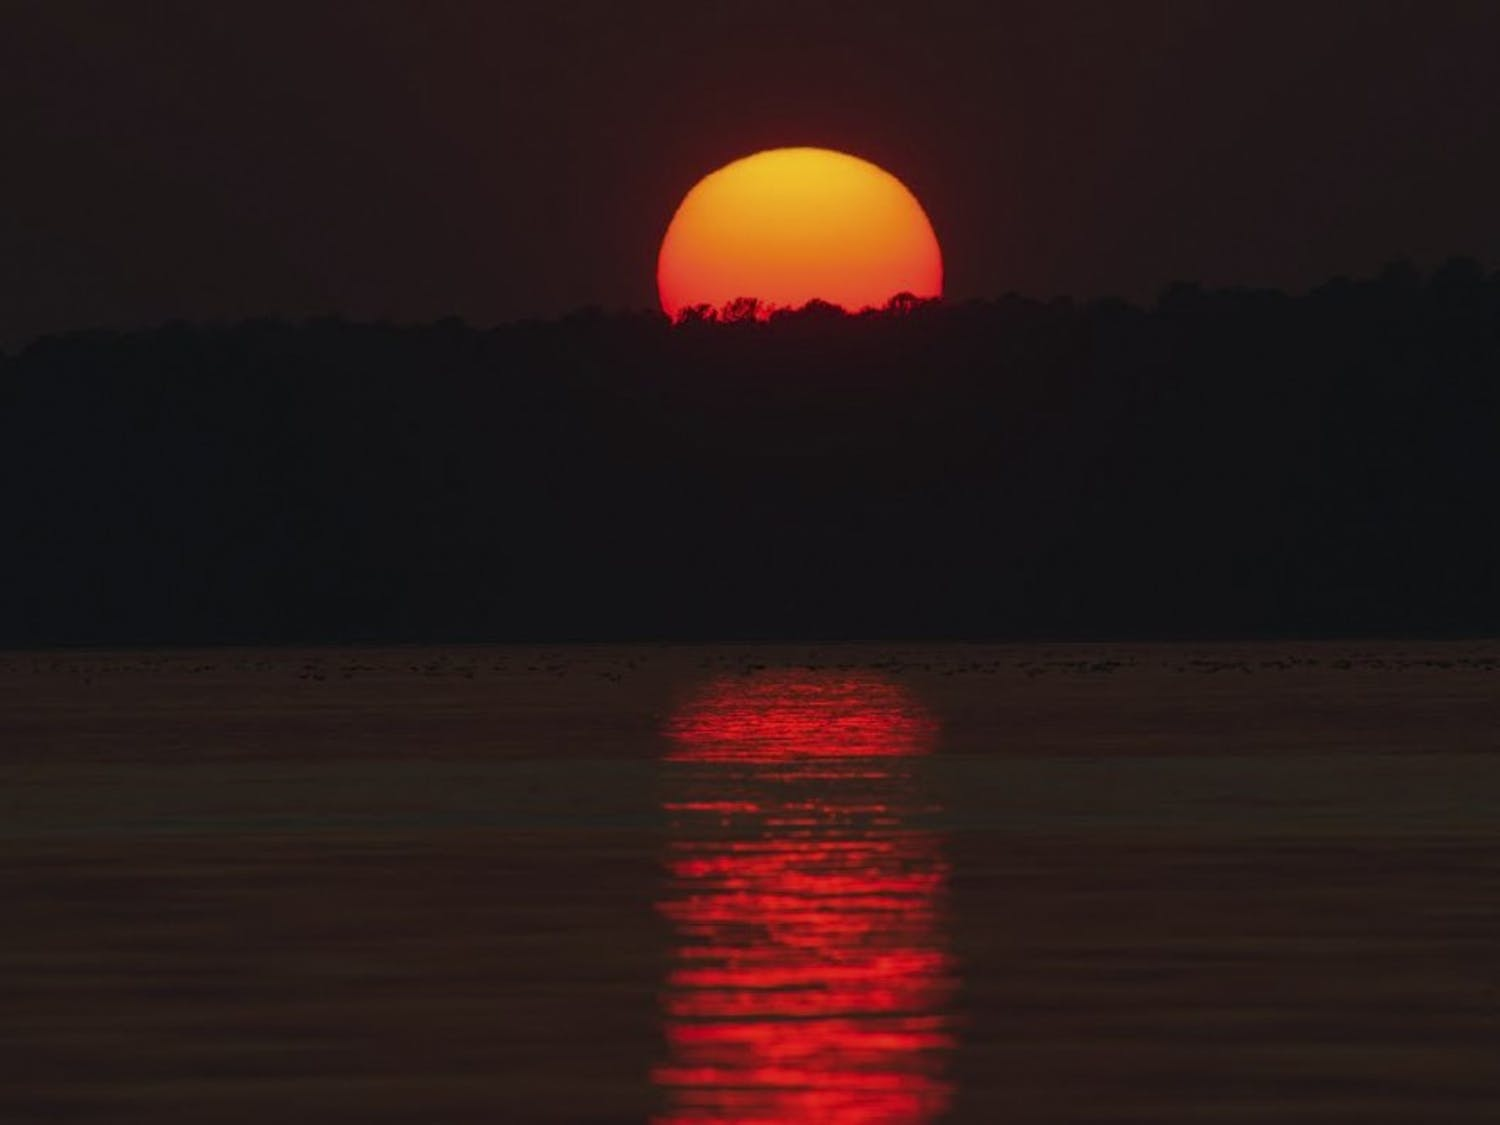 Students have enjoyed the recent warm weather and have taken advantage by doing things such as watching the sunset over Jordan Lake.